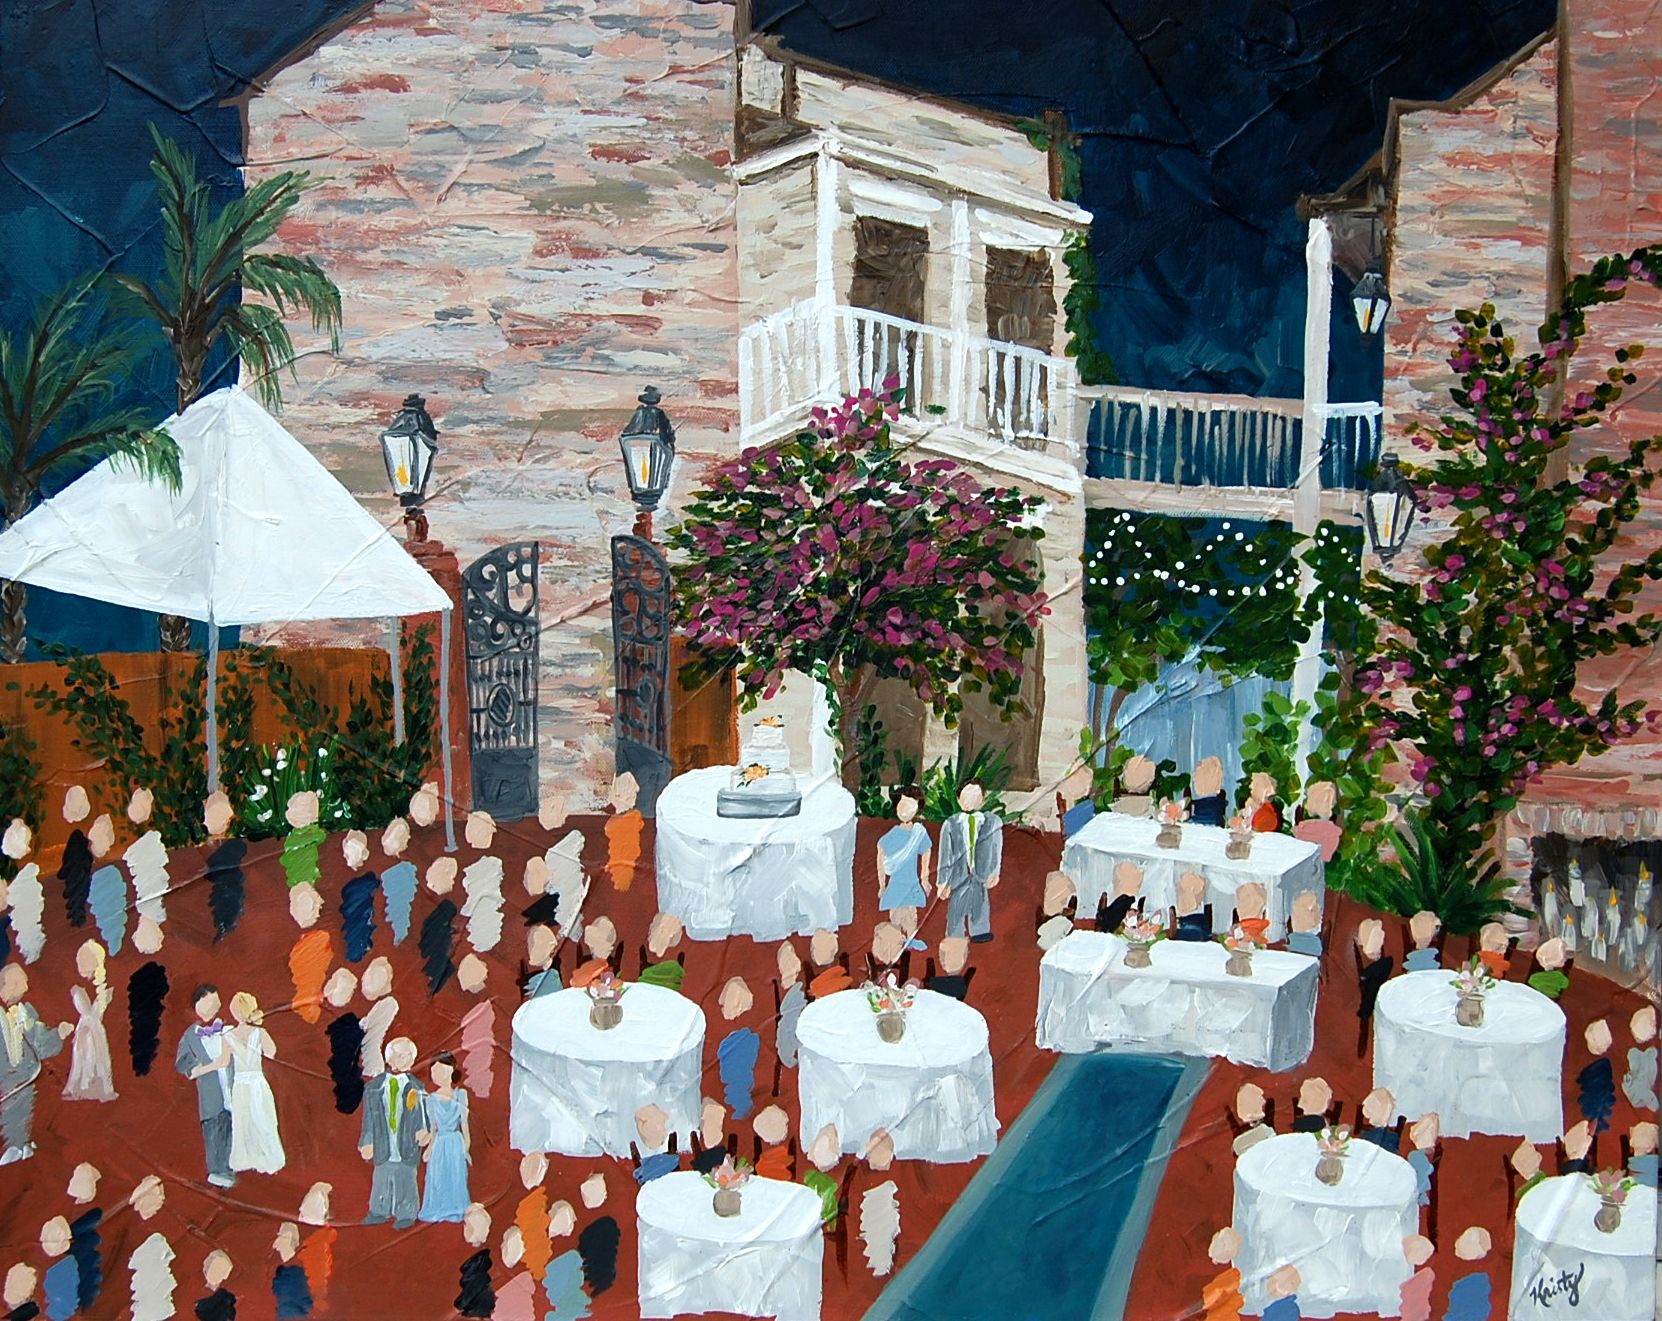 One Of My Favorite Venues To Paint Is Race And Religious Here In New Orleans